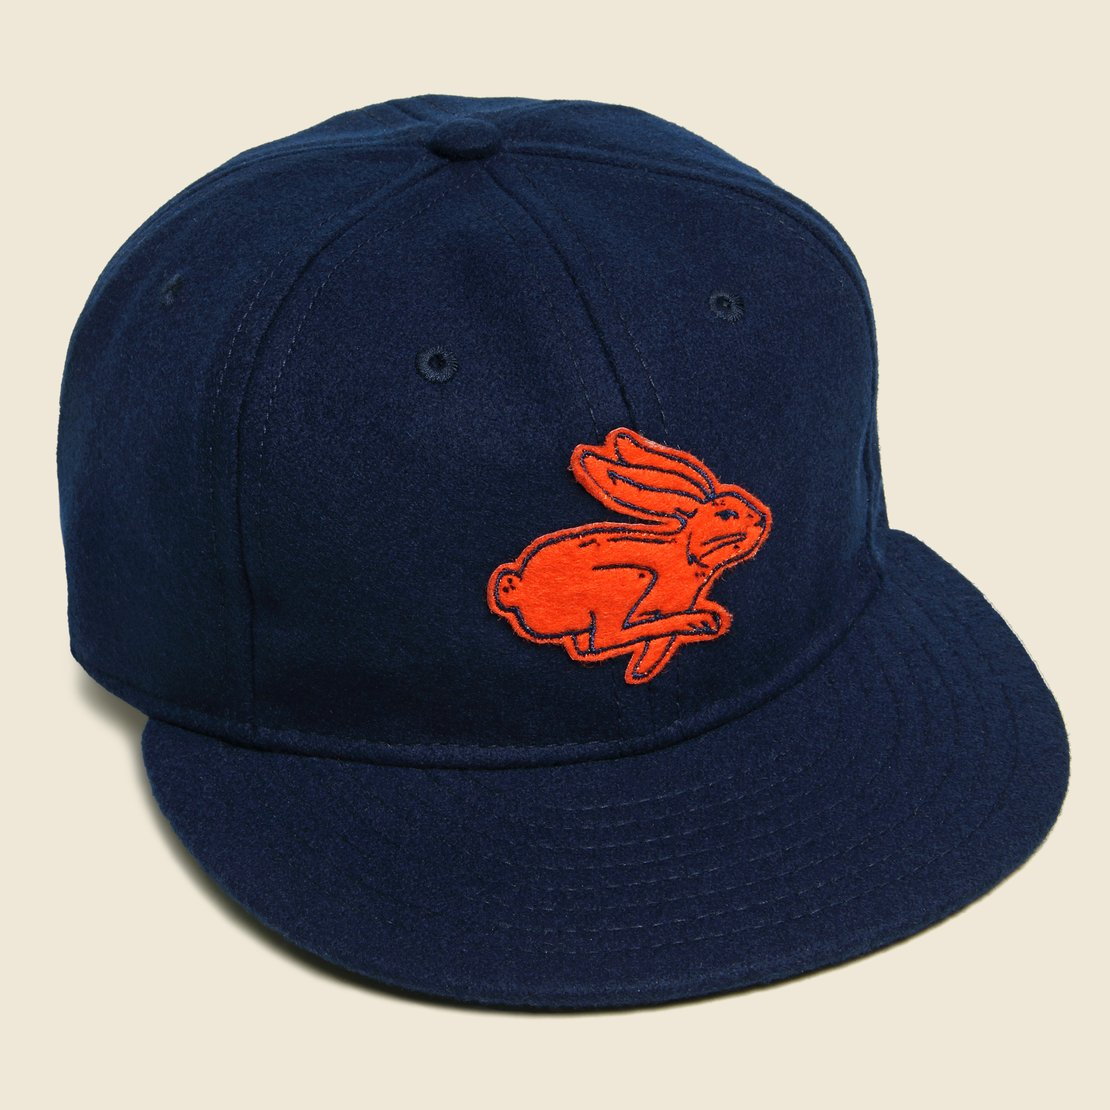 Ebbets Field Flannels Texas Playboys Cap - Navy